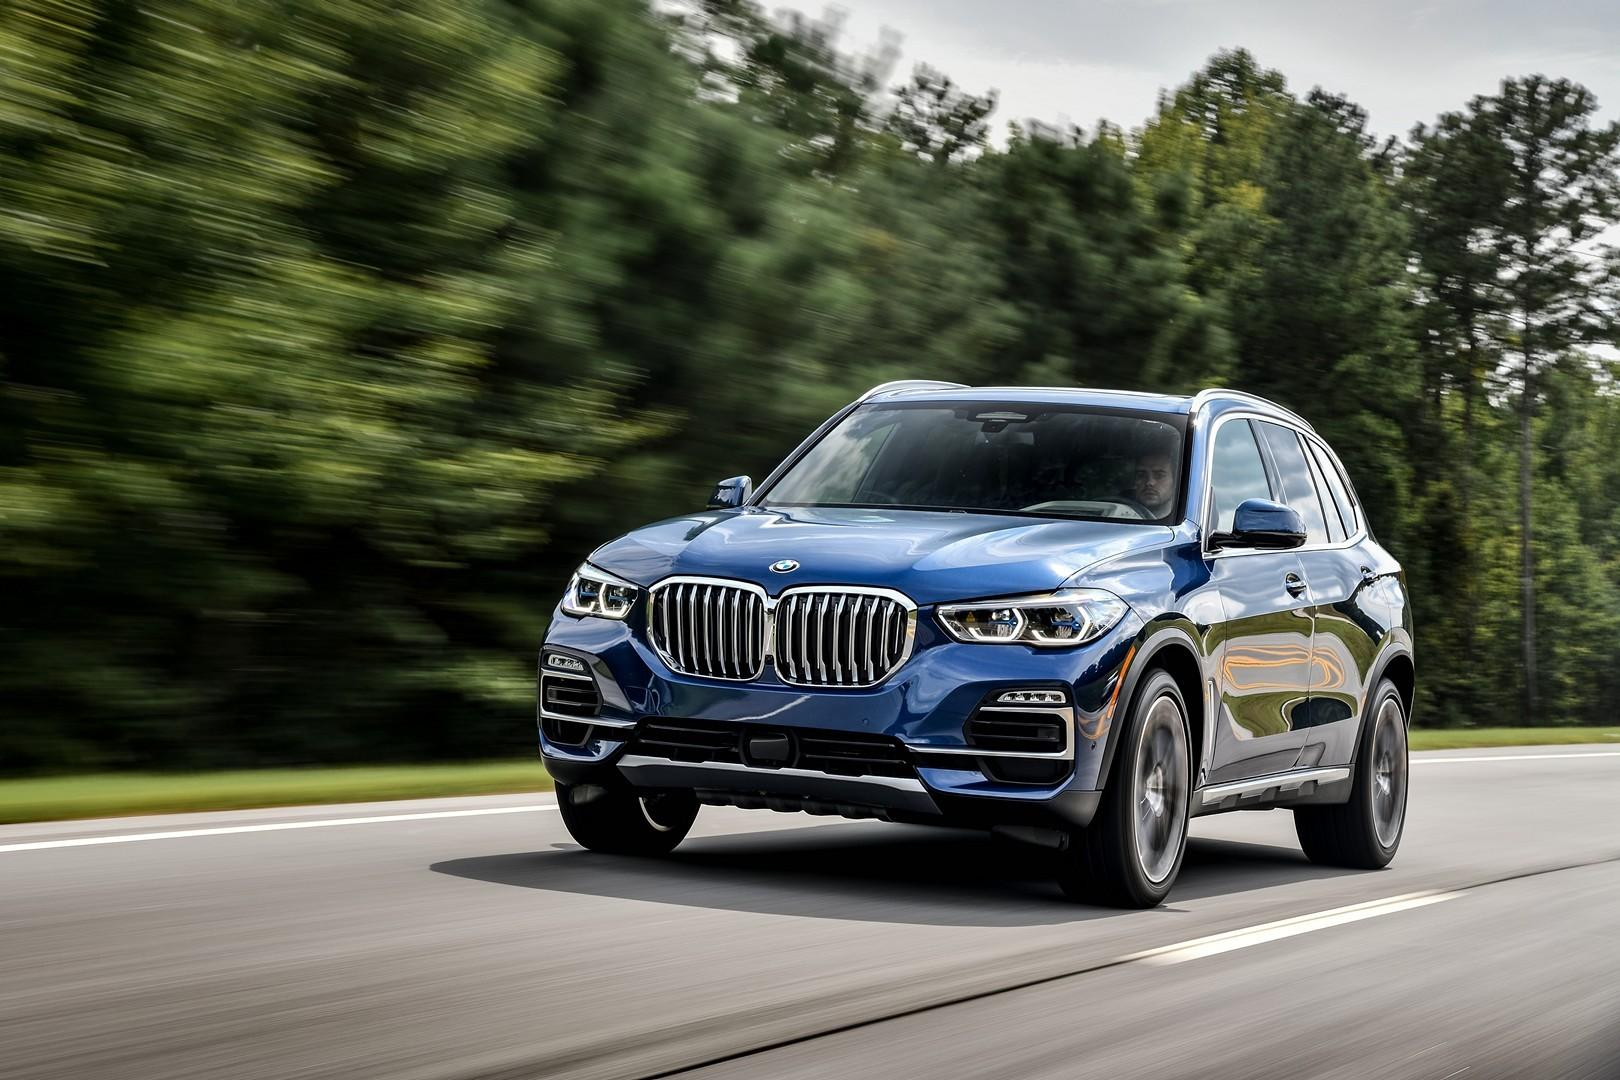 BMW X3 xDrive30e and X5 xDrive45e Plug-In Hybrids Are Coming ...